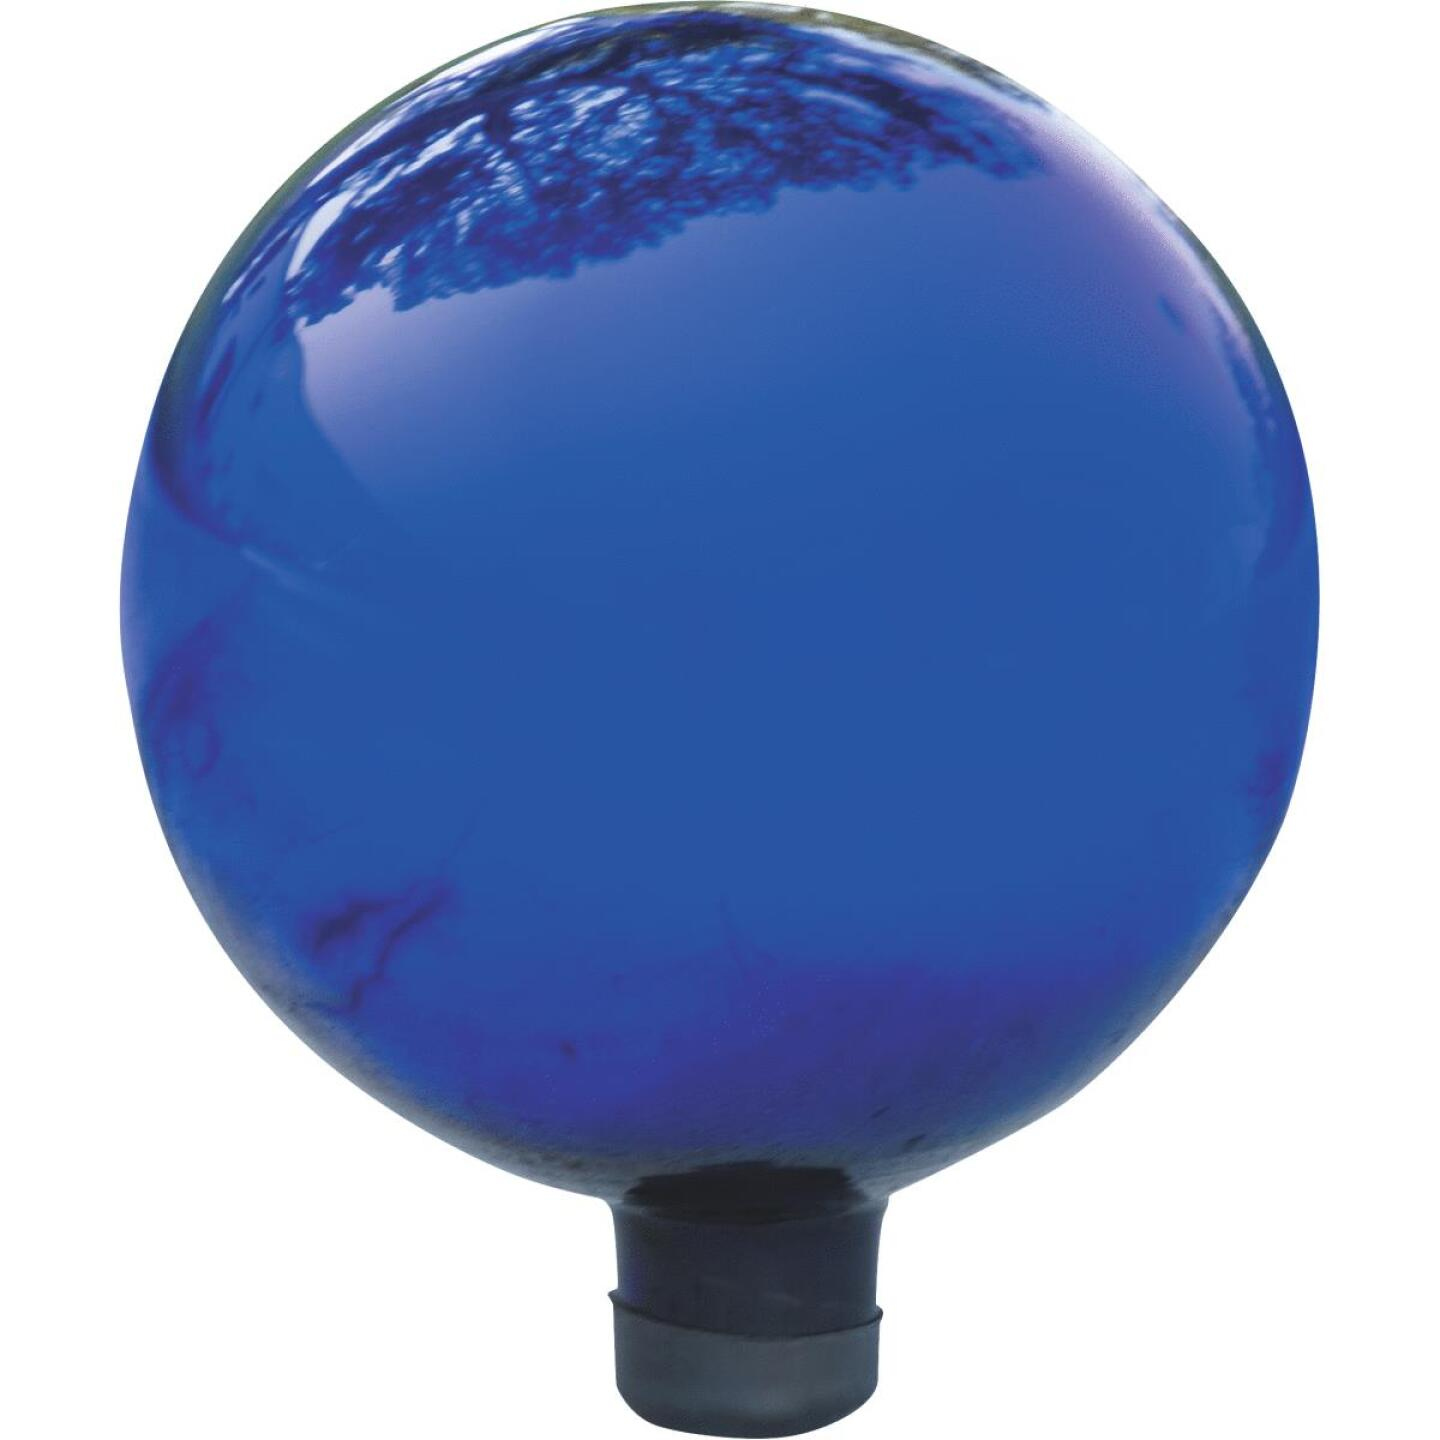 Alpine 10 In. Dia. Electric Blue Glass Gazing Globe Lawn Ornament Image 1